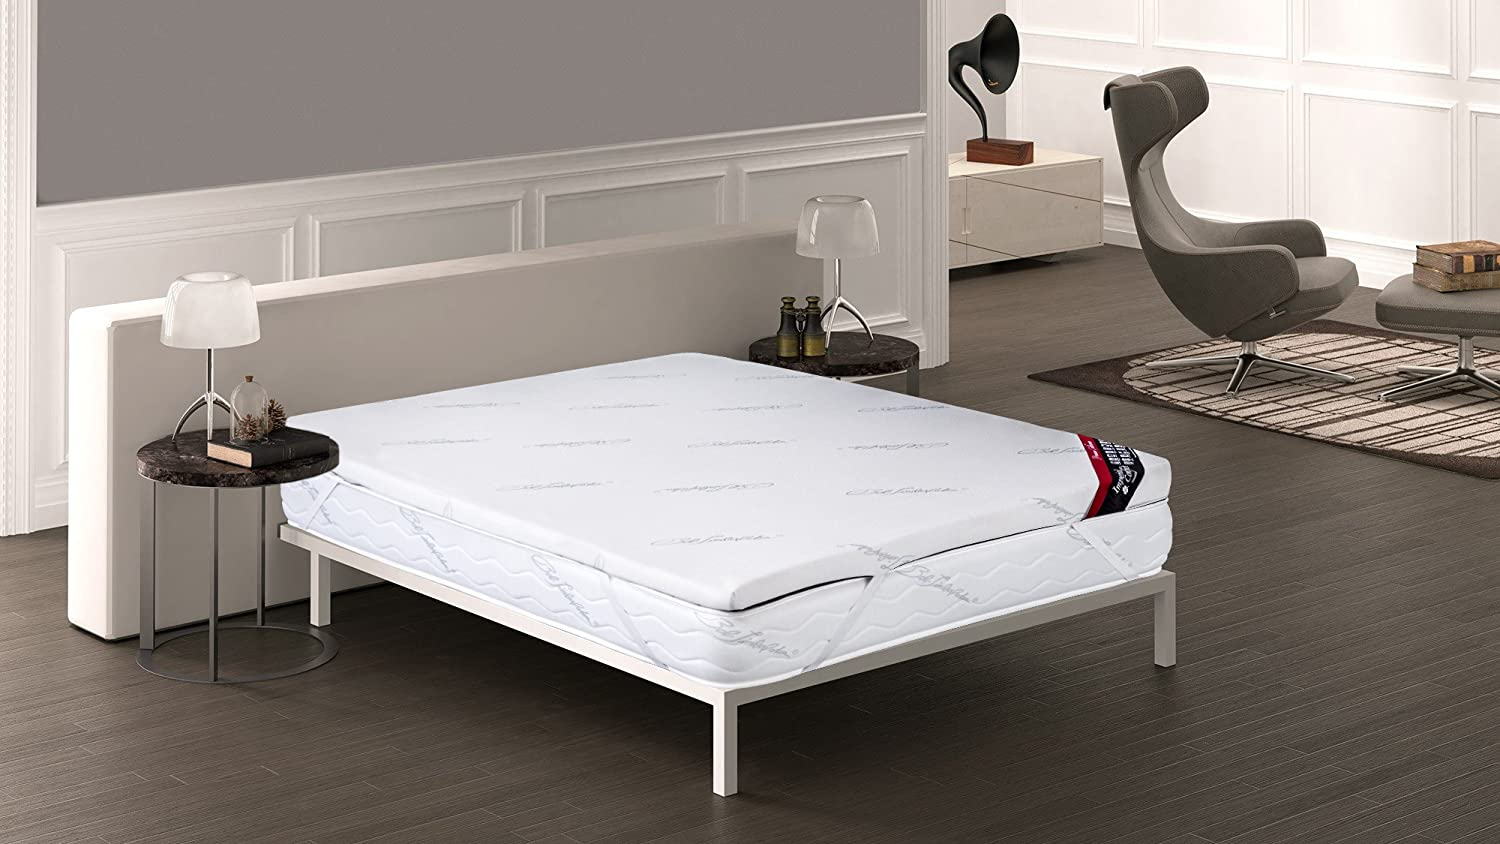 Imperial Confort - Topper viscoelástico - 90 x 180 cm - Grosor 5 cm: Amazon.es: Hogar